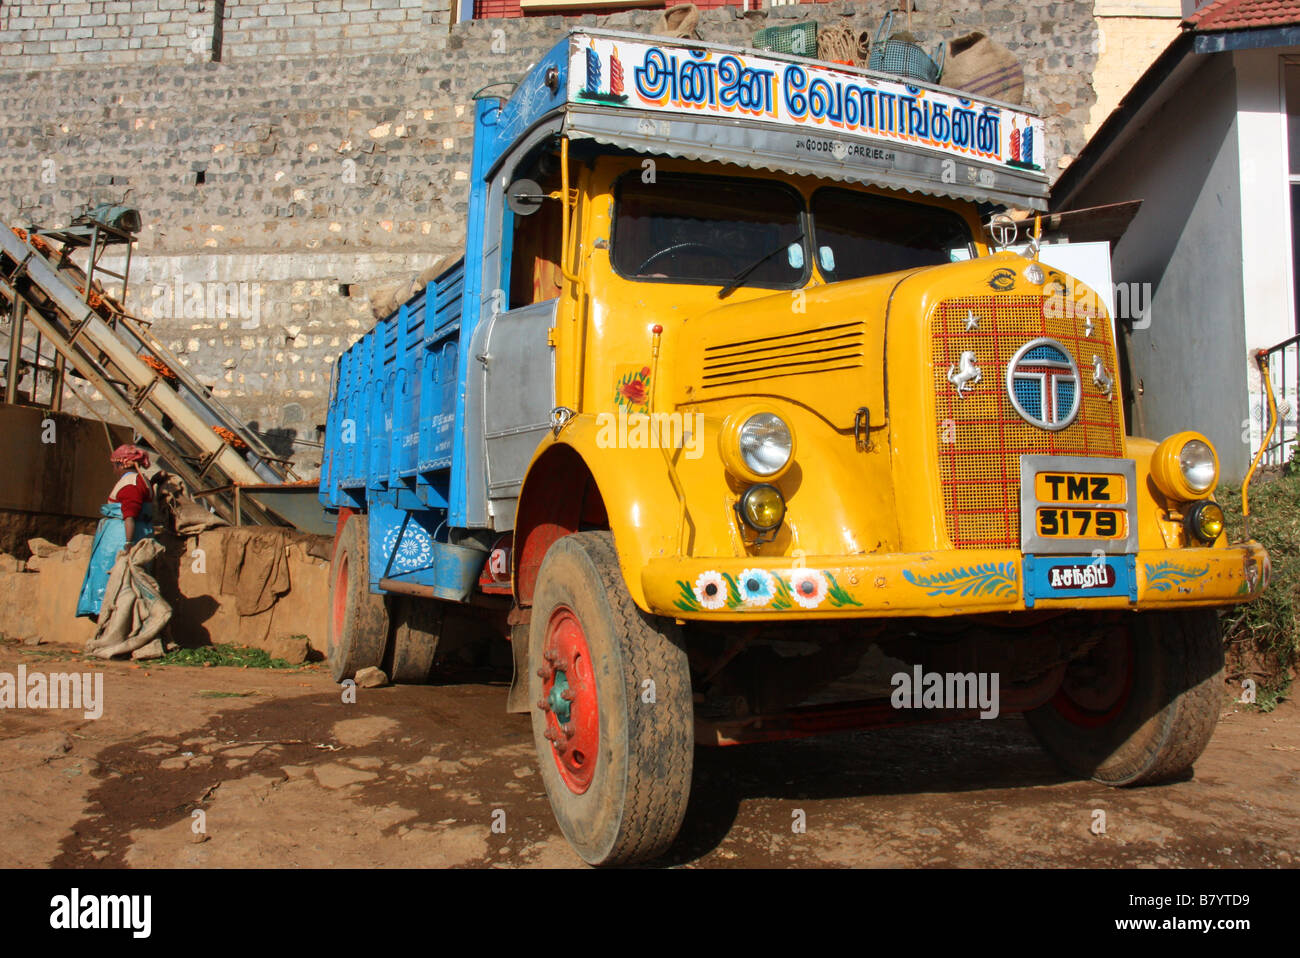 Old Indian Lorry Stock Photos & Old Indian Lorry Stock